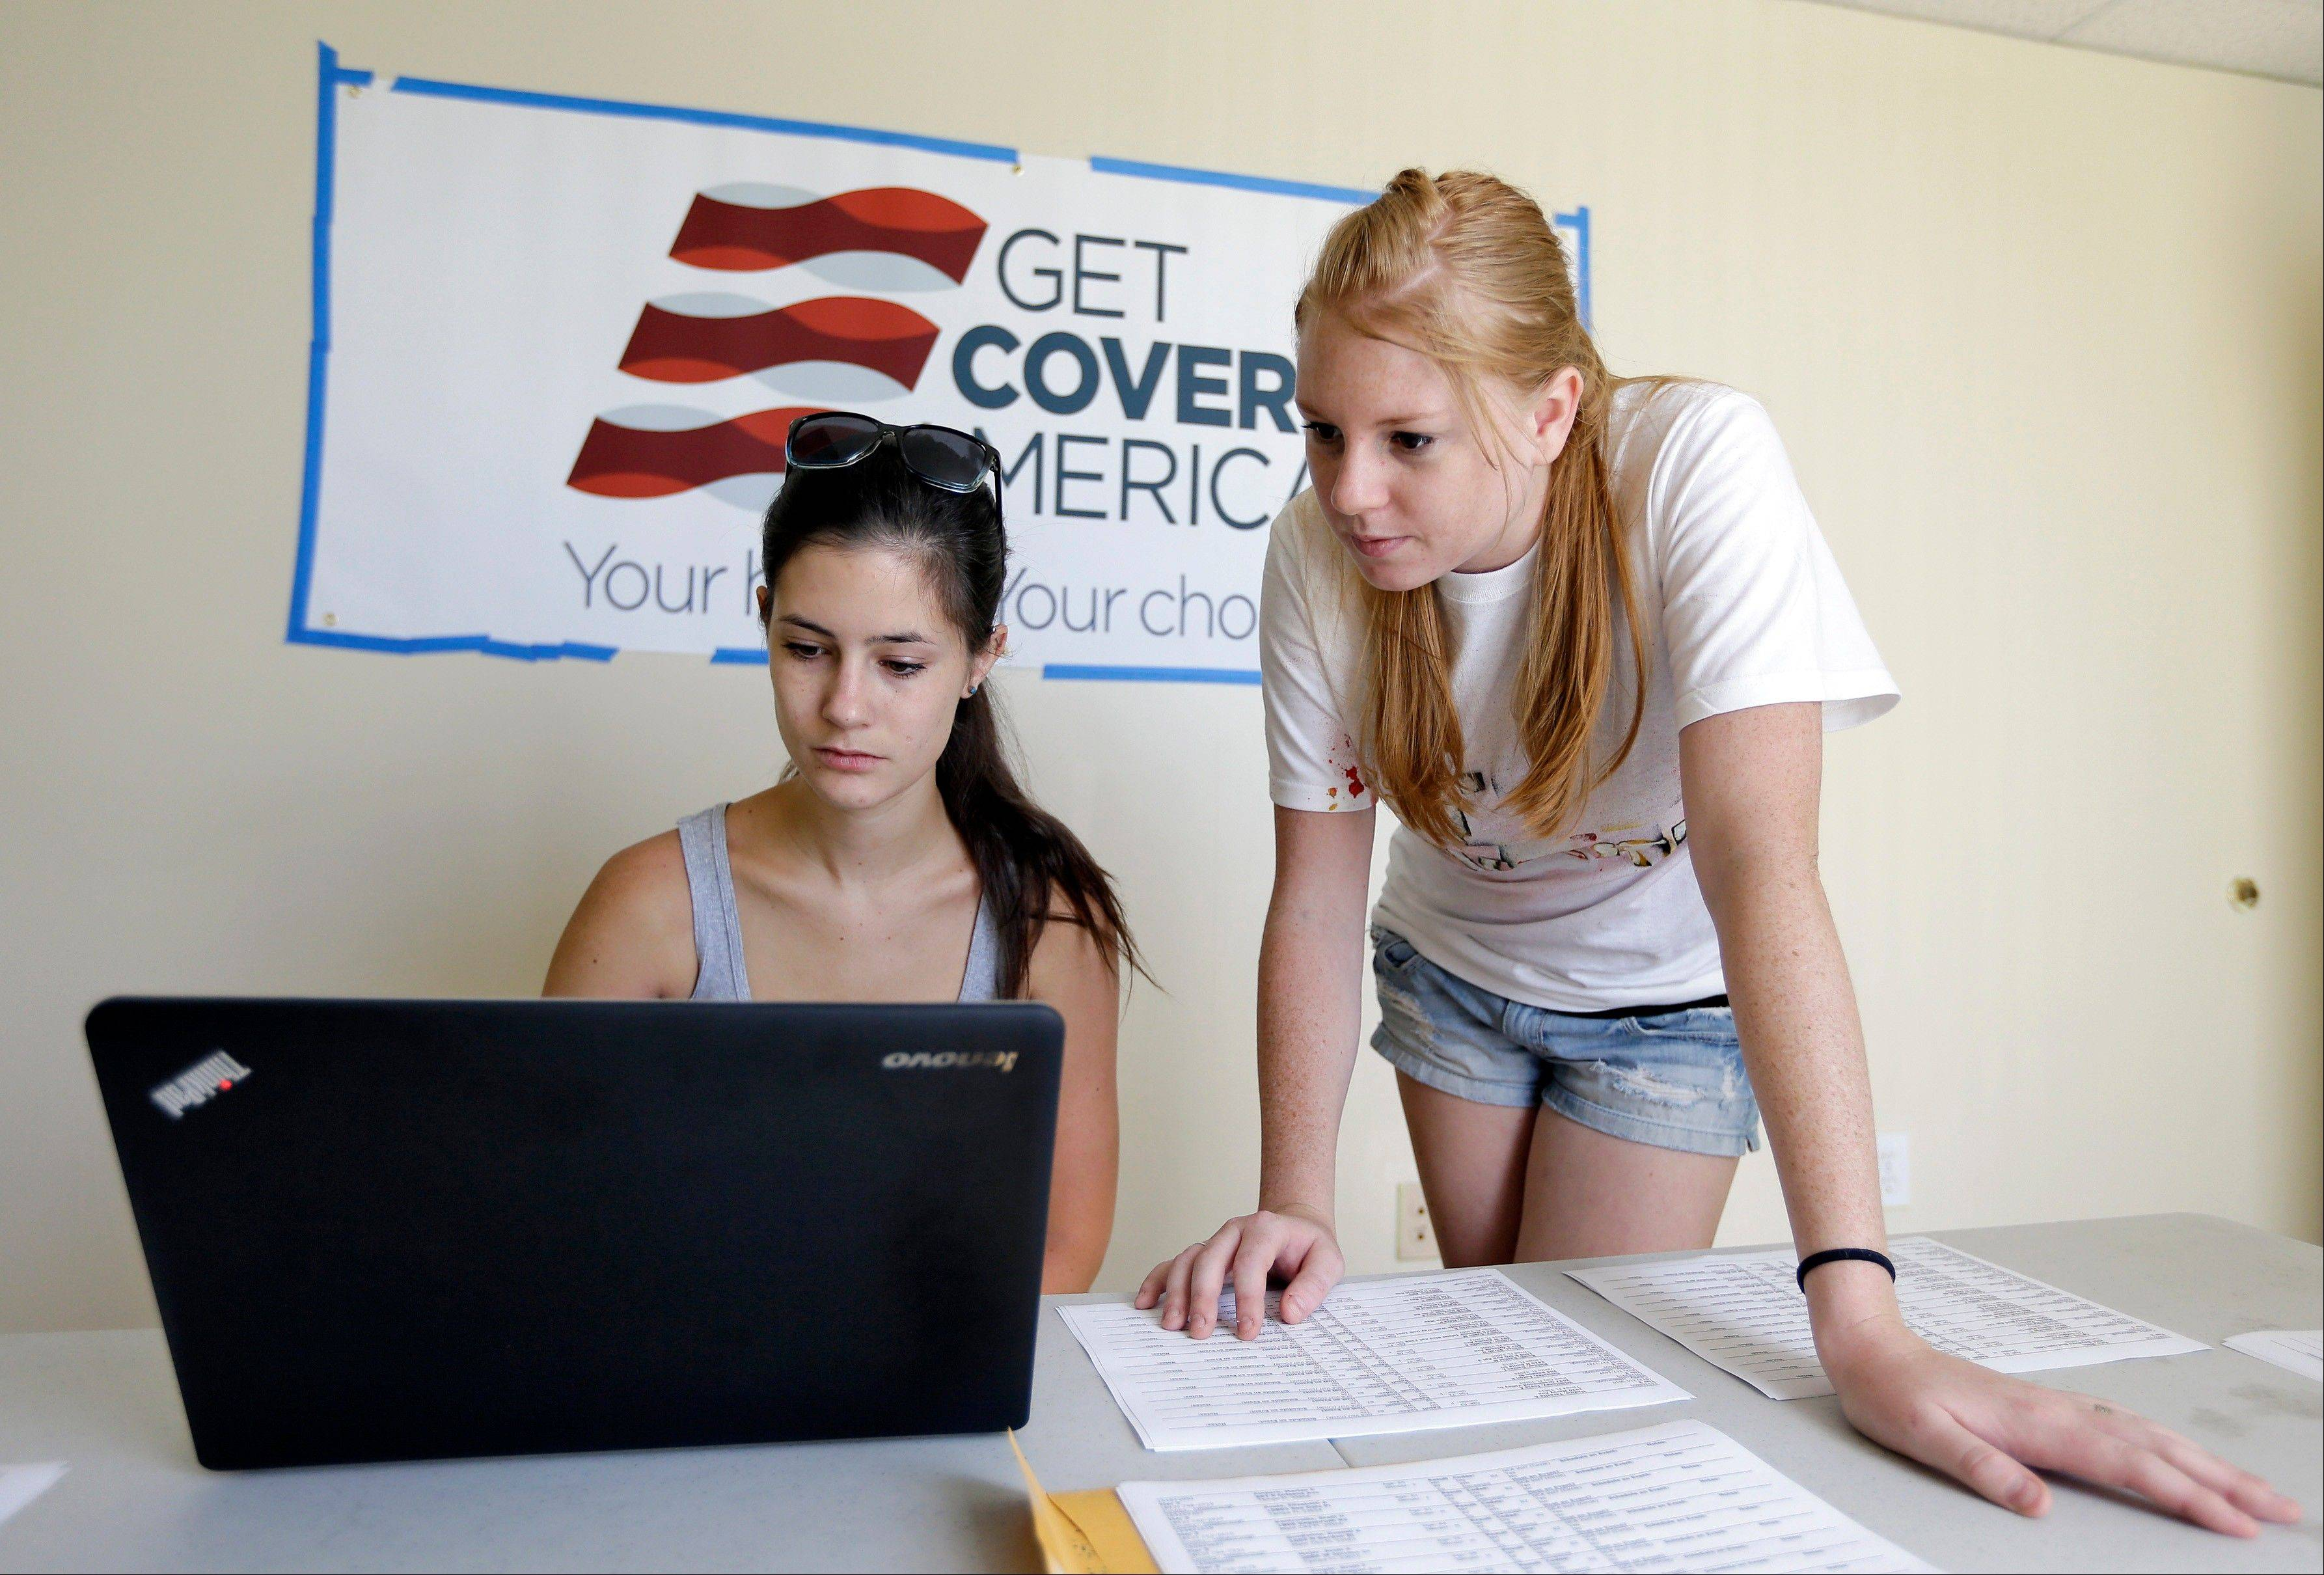 Ashley Hentze, left, of Lakeland, Fla., gets help signing up for health care from Kristen Nash, a volunteer with Enroll America, a private, non-profit organization running a grassroots campaign to encourage people to sign up for health care, Tuesday, Oct. 1, in Tampa. After months of build up, Florida residents can start shopping for health insurance on government-run online marketplaces as the key component of President Barack Obama's signature health care law.